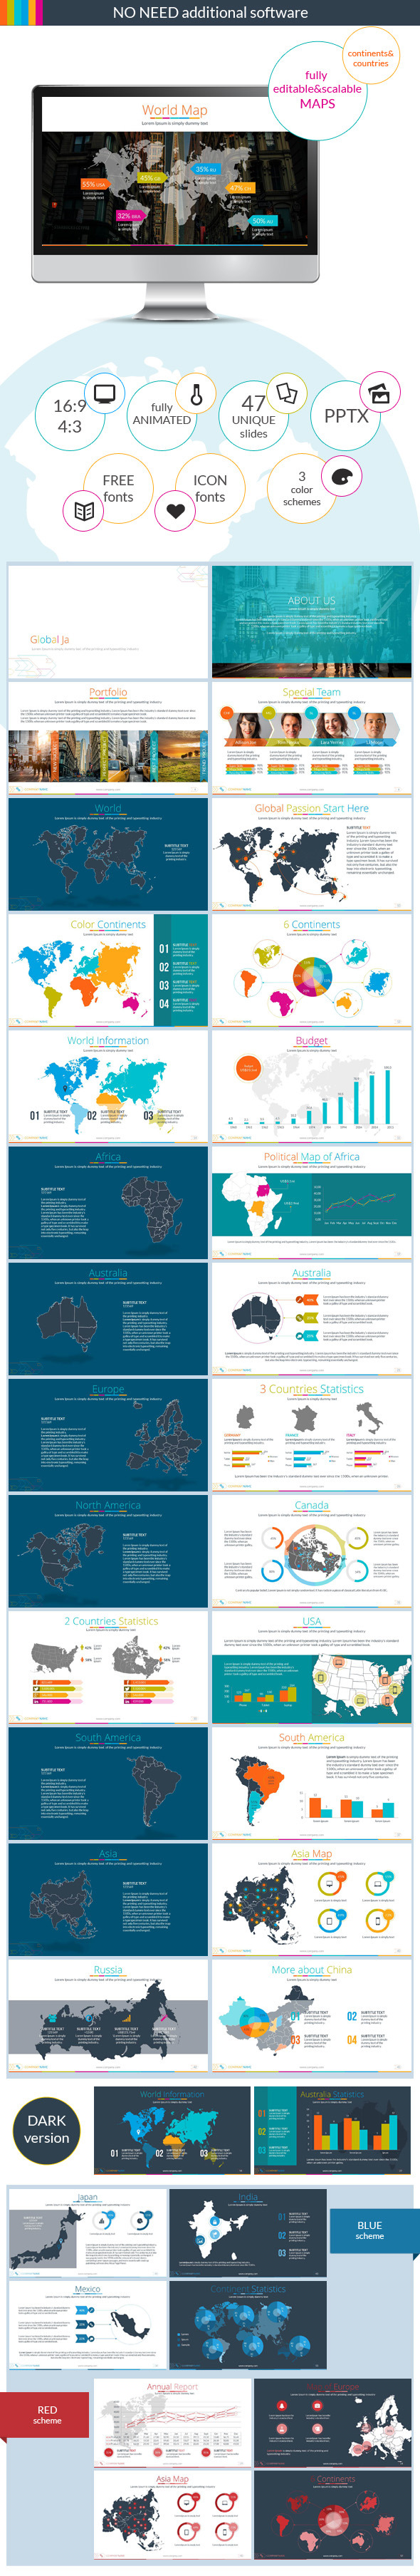 Continents&Countries PowerPoint Presentation